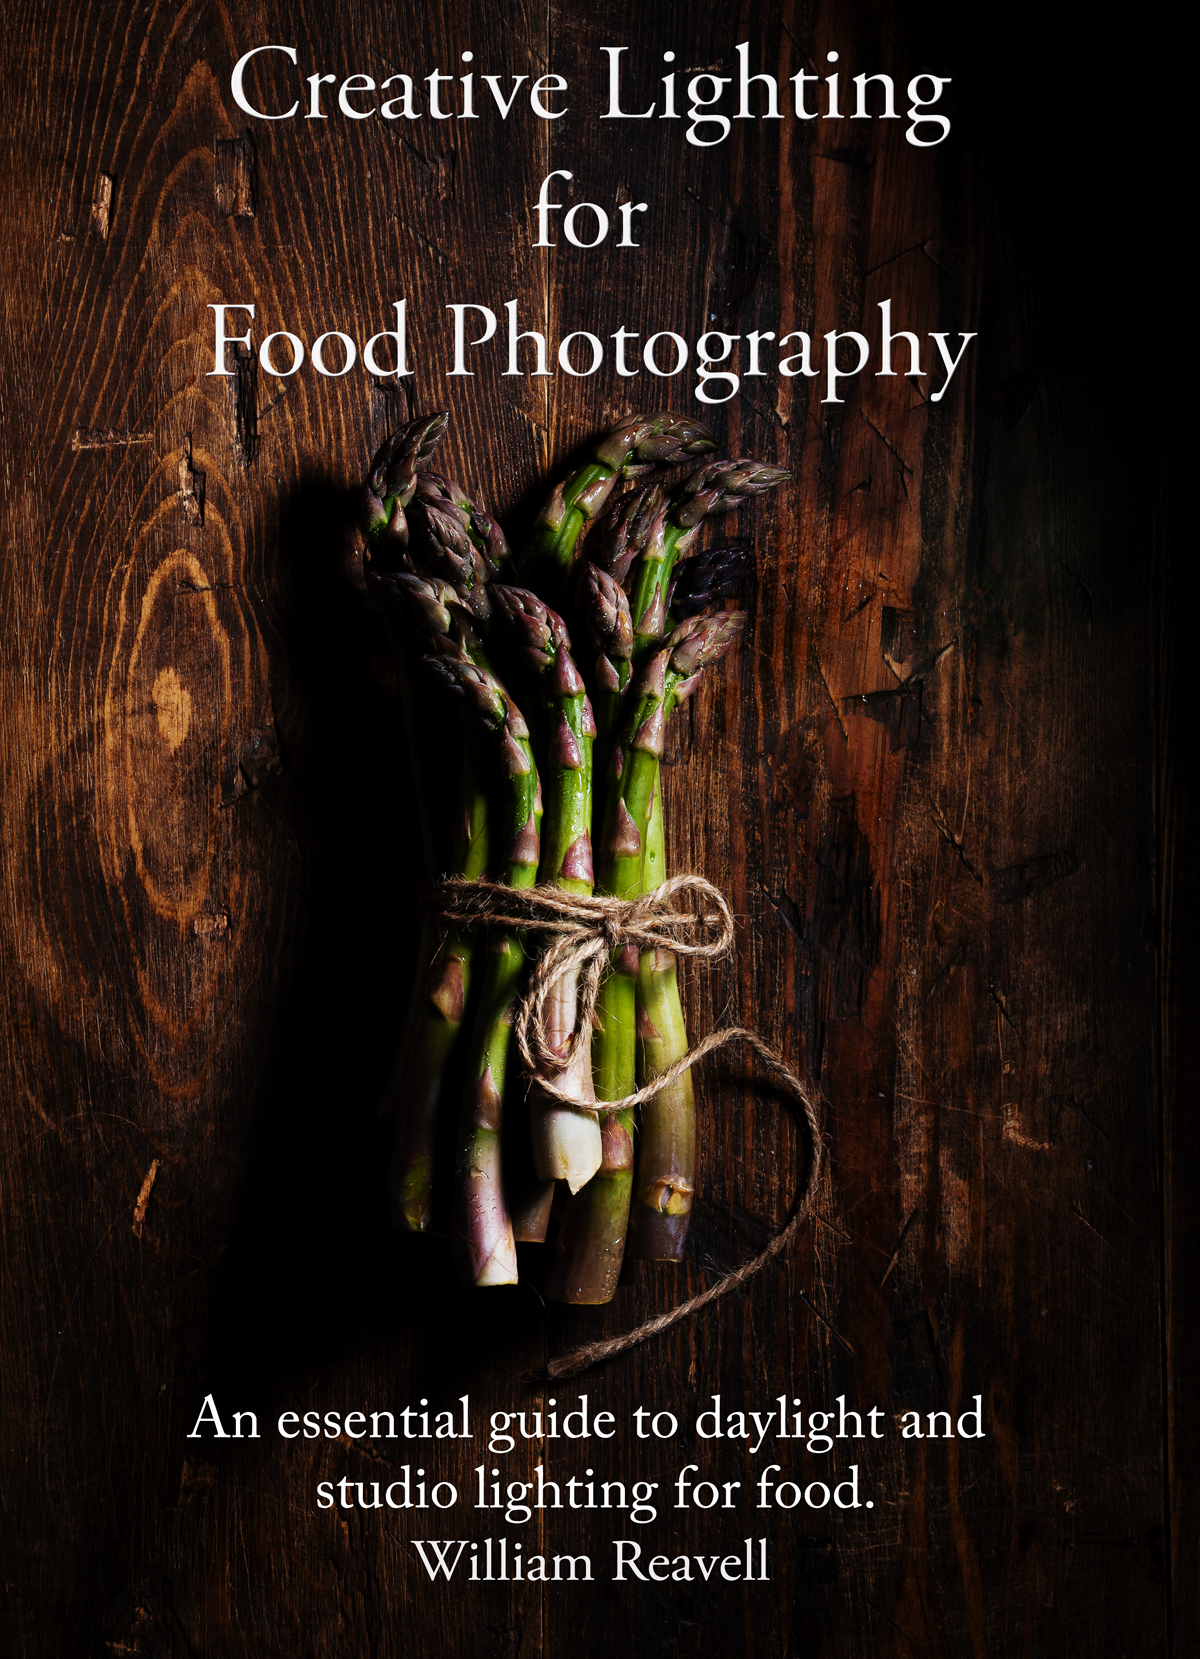 Food Photography Training- WebStore-Creative lighting for Food Photography  PDF Format